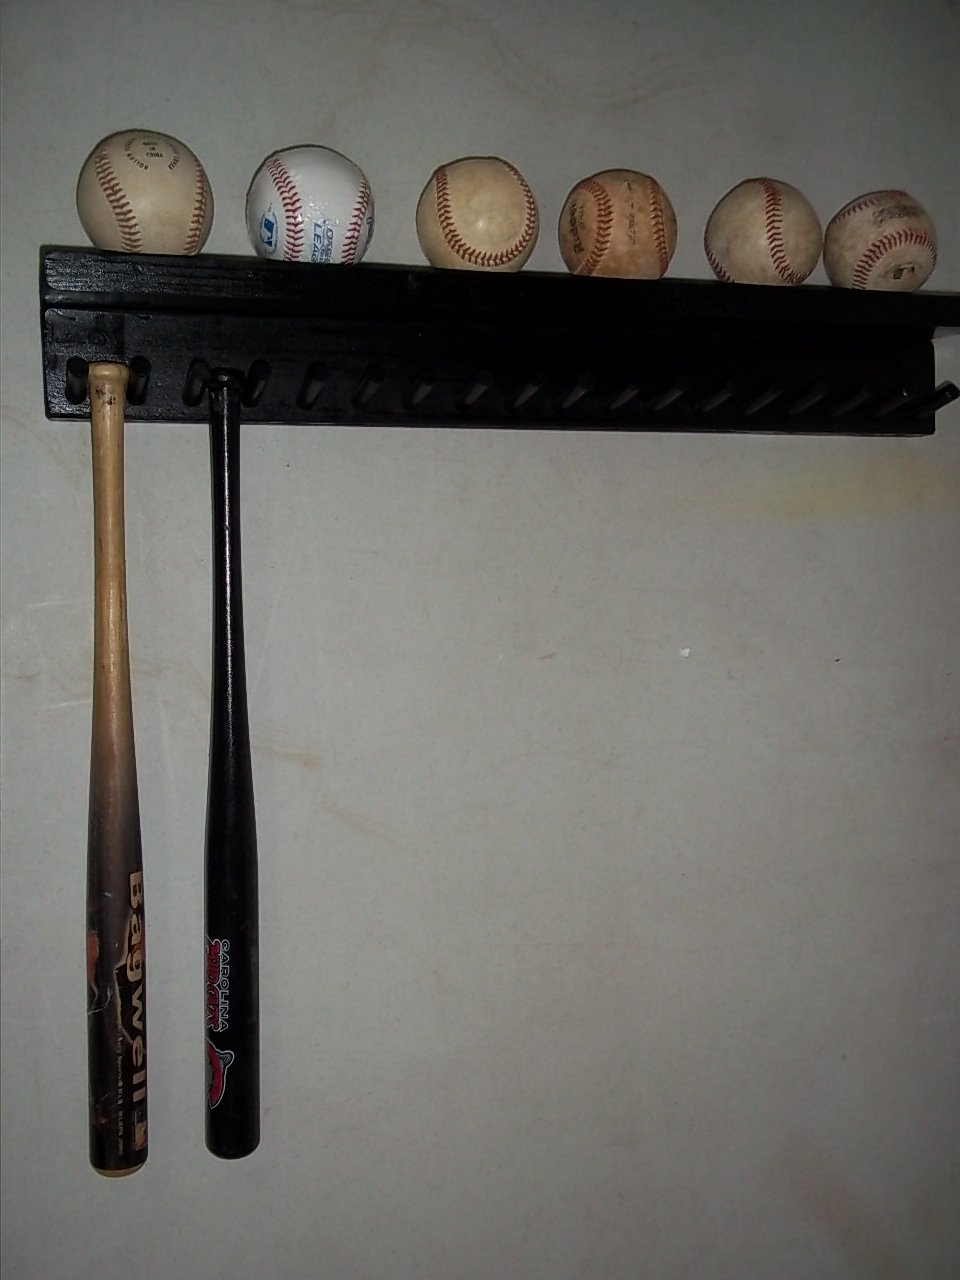 Solid Wood Baseball Mini Size Bat Rack up to 17 Bats 6 Balls Black Custom Deluxe M17B6 by Baseballrack